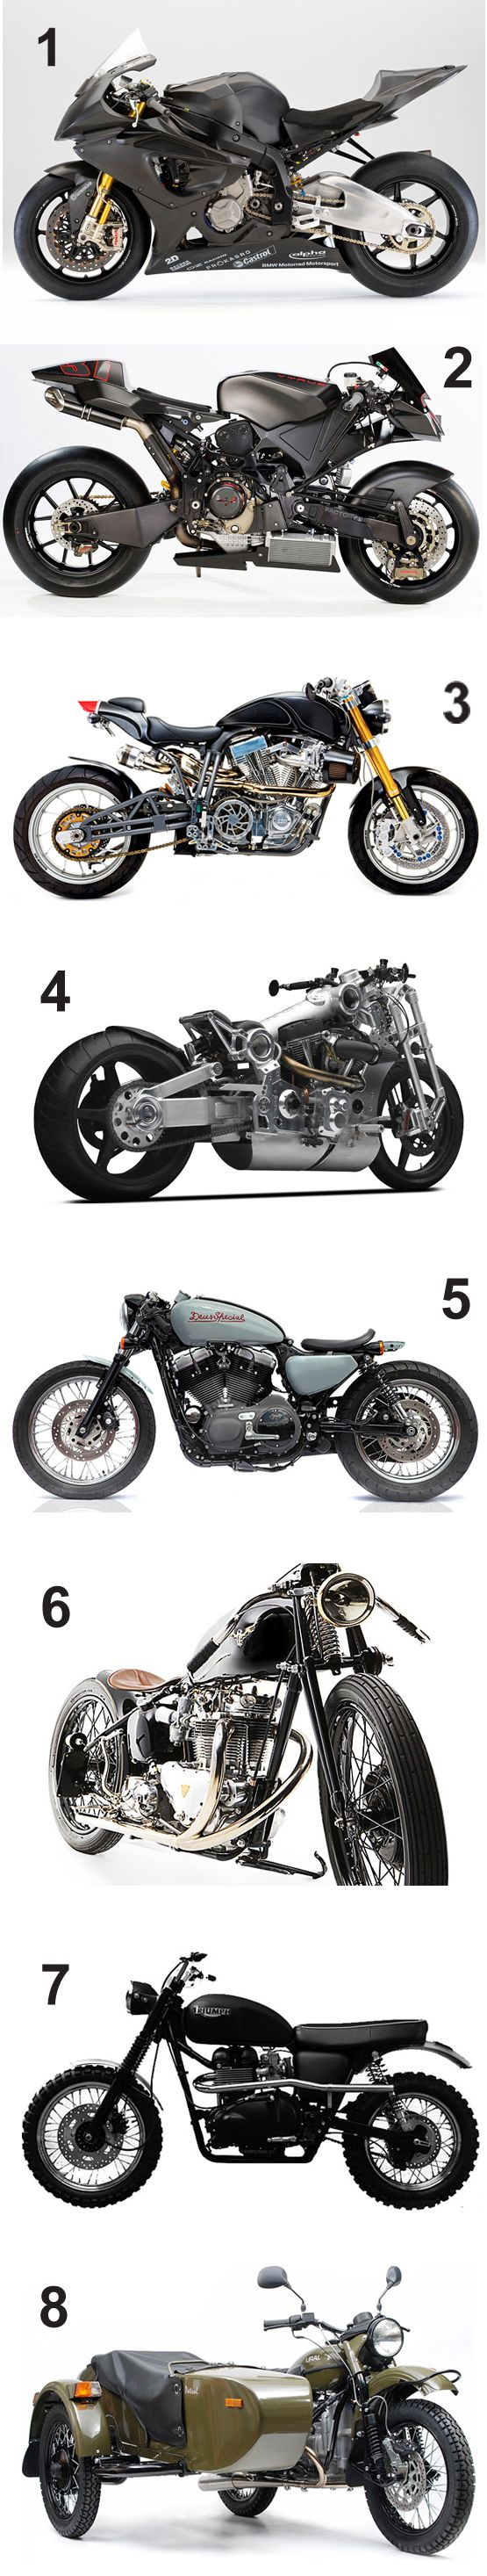 1 BMW S 1000 RR / 2 Vyrus 987 C3 4V / 3 Ecosse Heretic T1 / 4 Confederate P120 Fighter / 5 Deus Ex Machina Customs / 6 Falcon Motorcycles / 7 Hammarhead Motorcycles / 8 Ural Patrol T